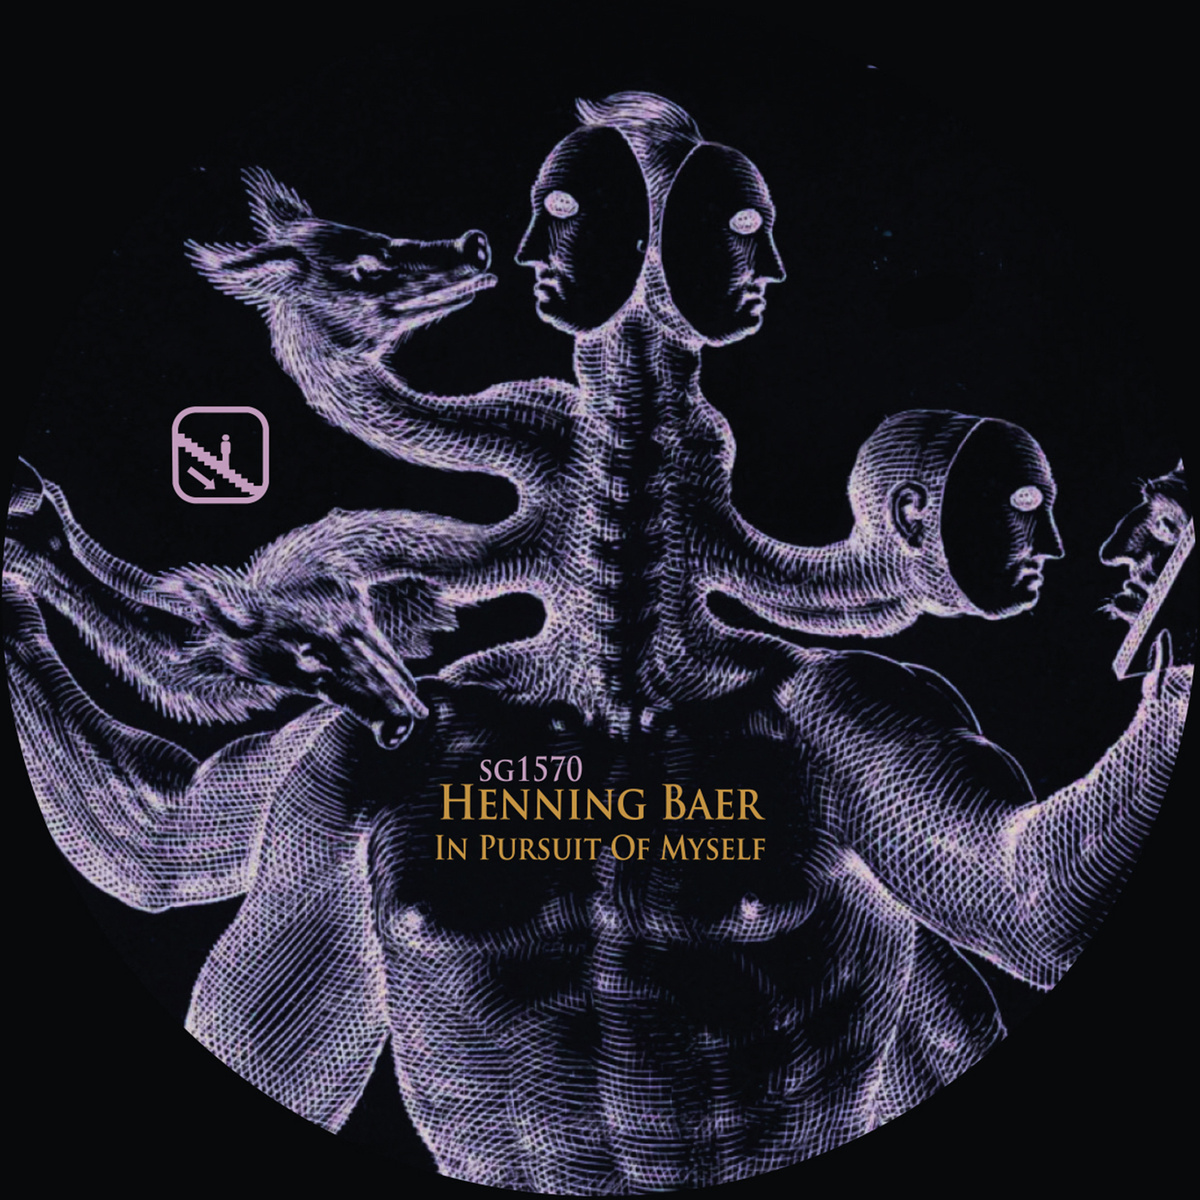 Henning Baer - In Pursuit Of Myself [SG1570]